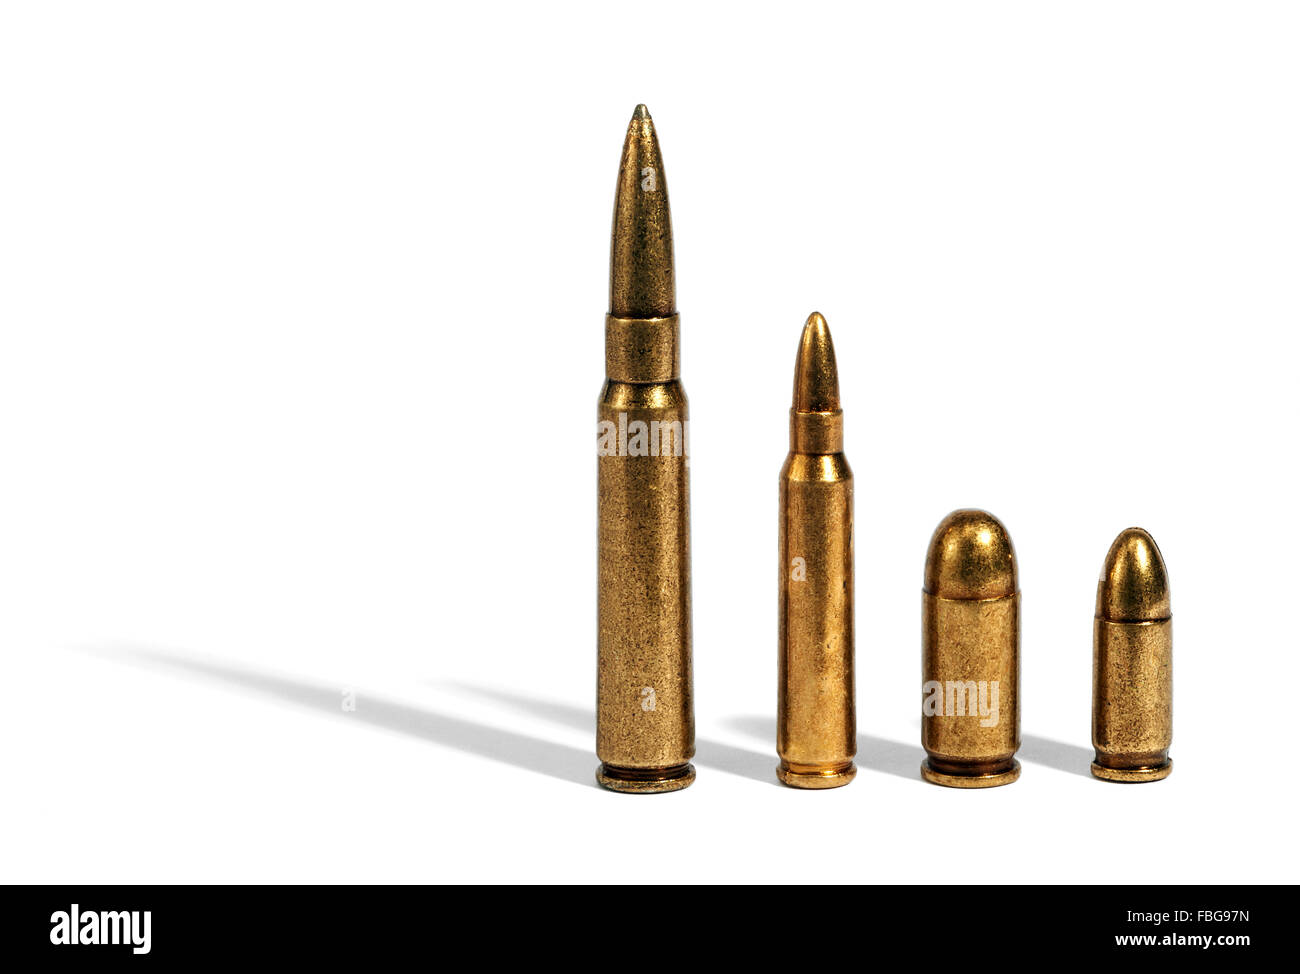 Four different sized bullets comparing ammunition over white background - Stock Image